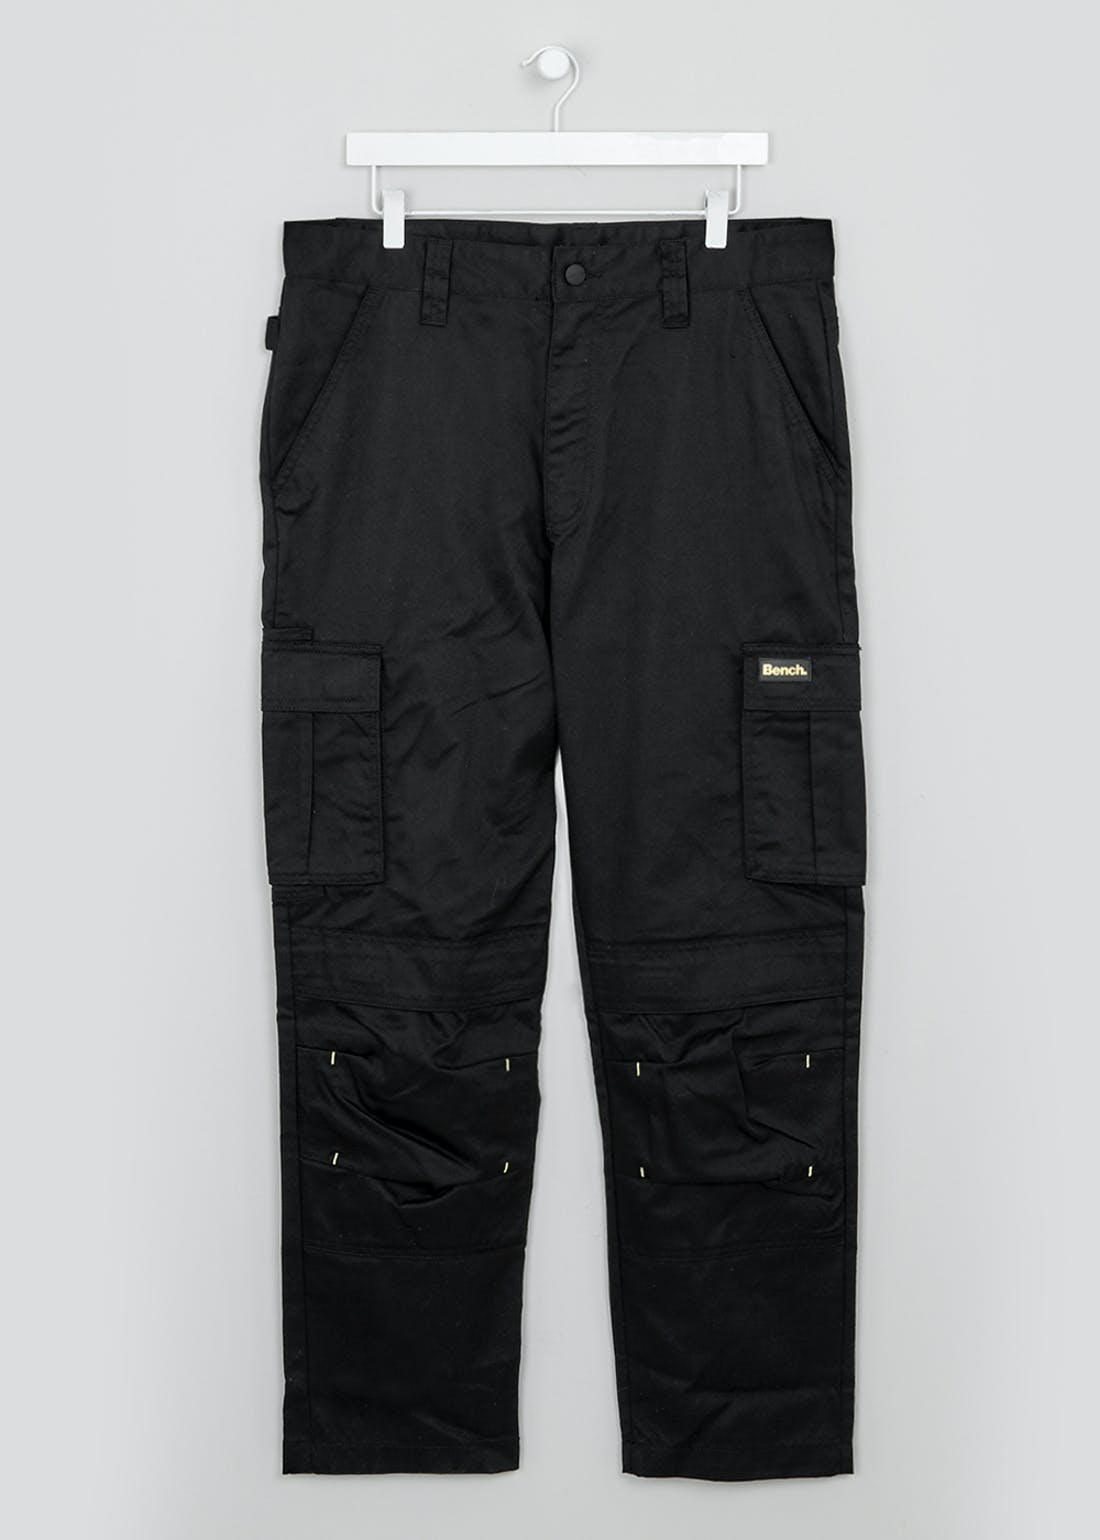 Bench Workwear Cargo Trousers